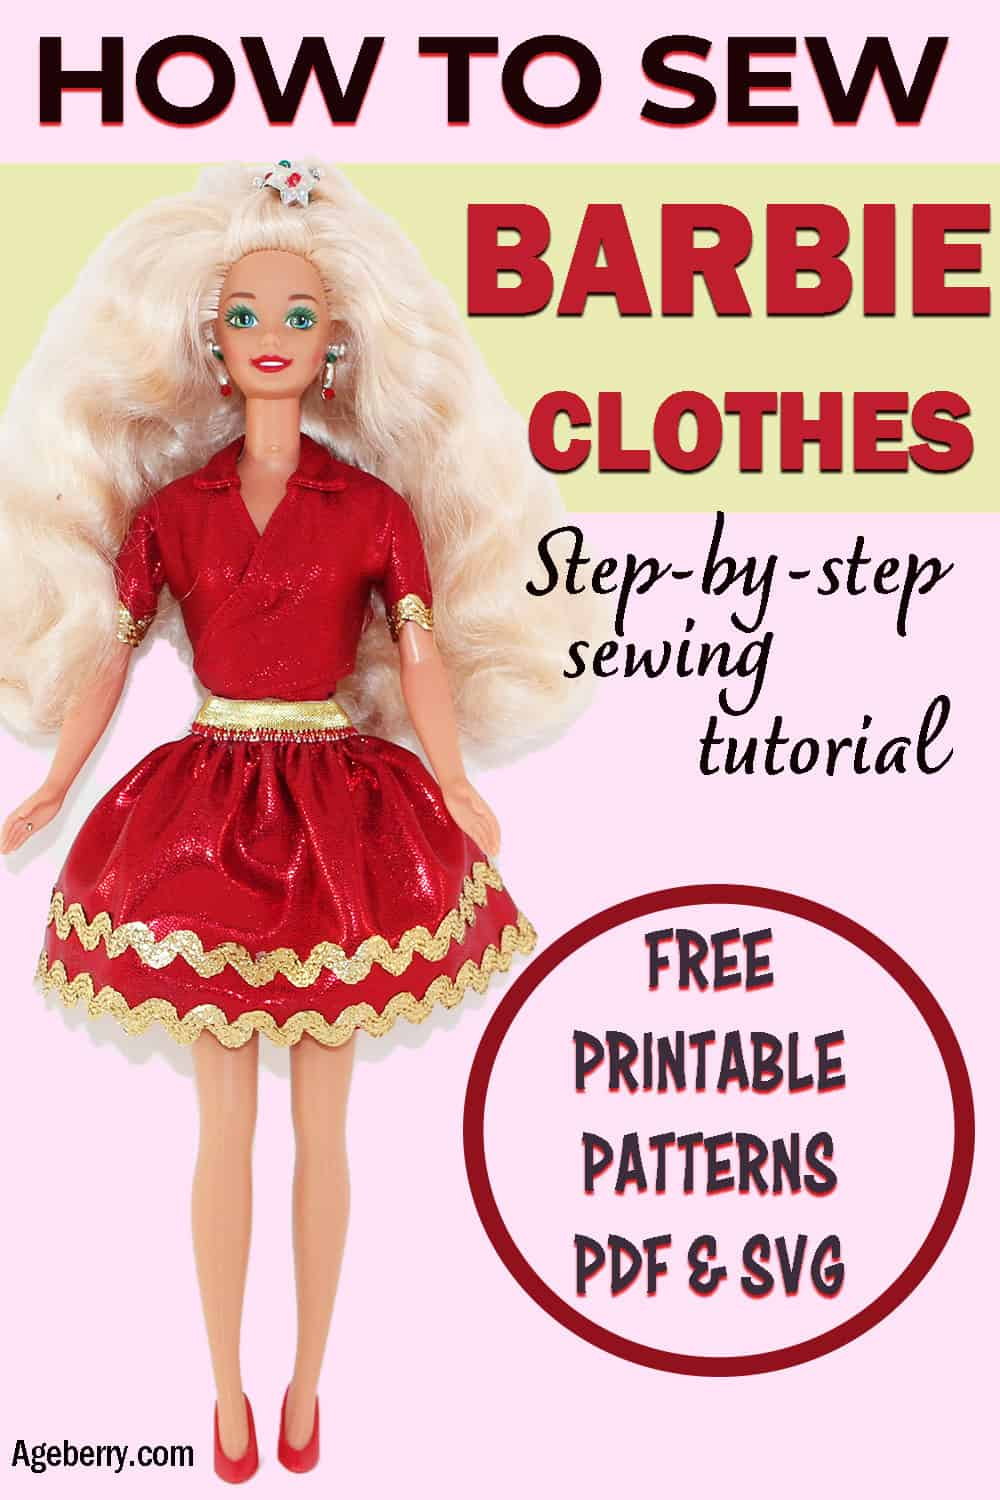 Free Printable Barbie Clothes Sewing Patterns : printable, barbie, clothes, sewing, patterns, Barbie, Clothes, Video, Sewing, Tutorial, Printable, Patterns